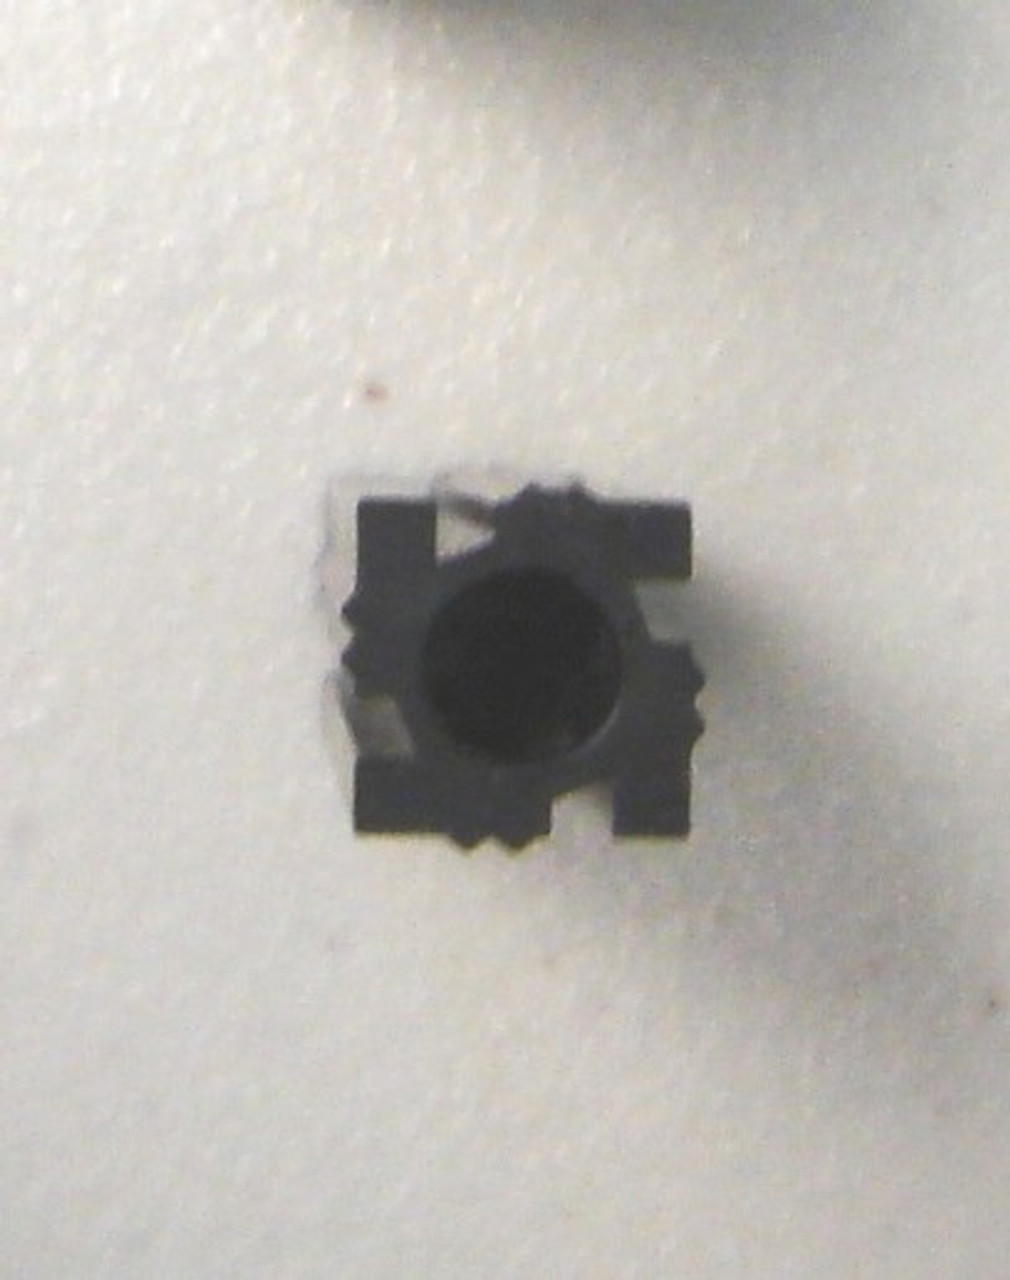 Top View T-PLUG, Baluster Mounting Plug